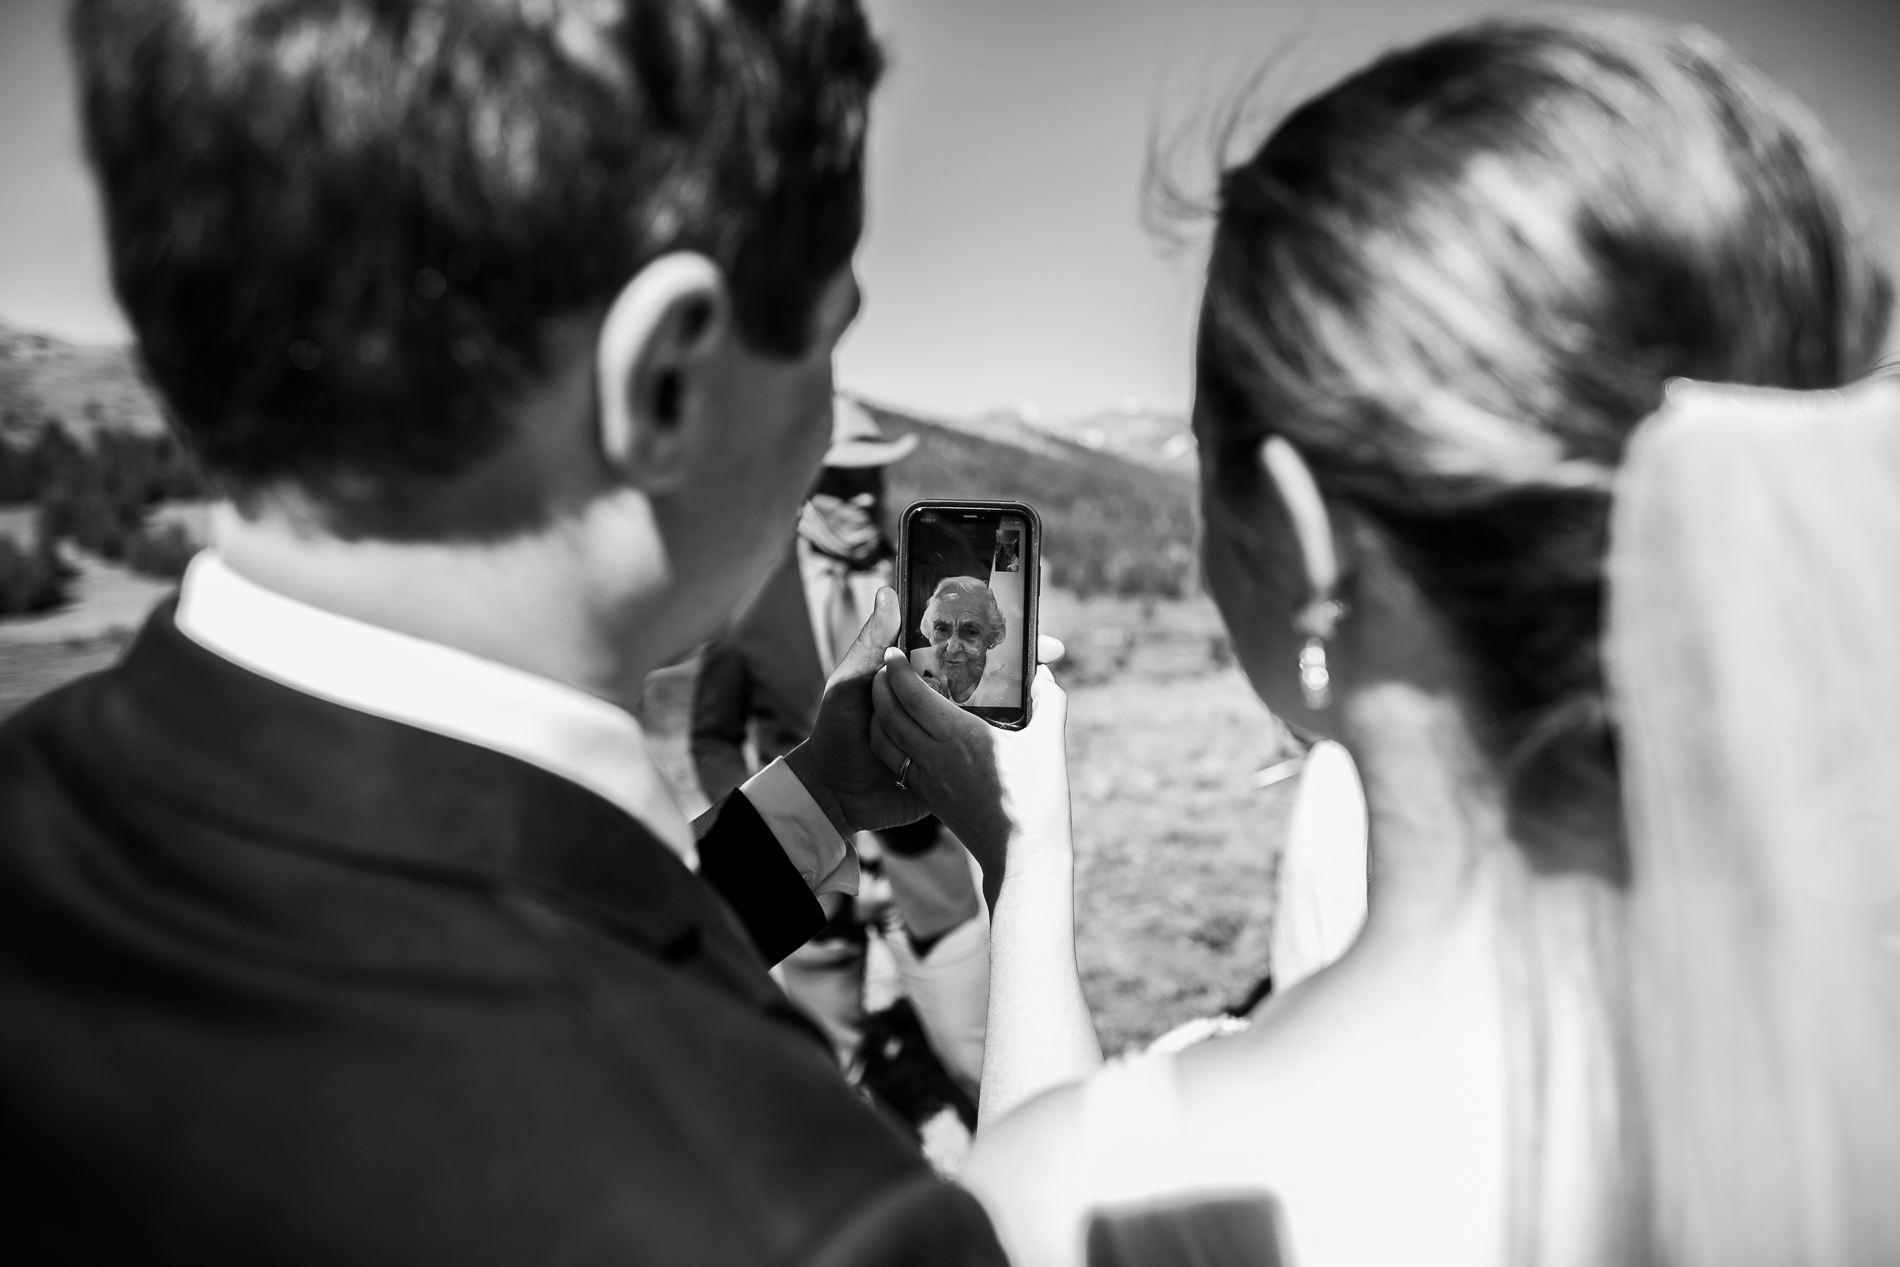 Colorado Elopement Photography and Adventure Weddings | Grandma was definitely the guest they missed the most